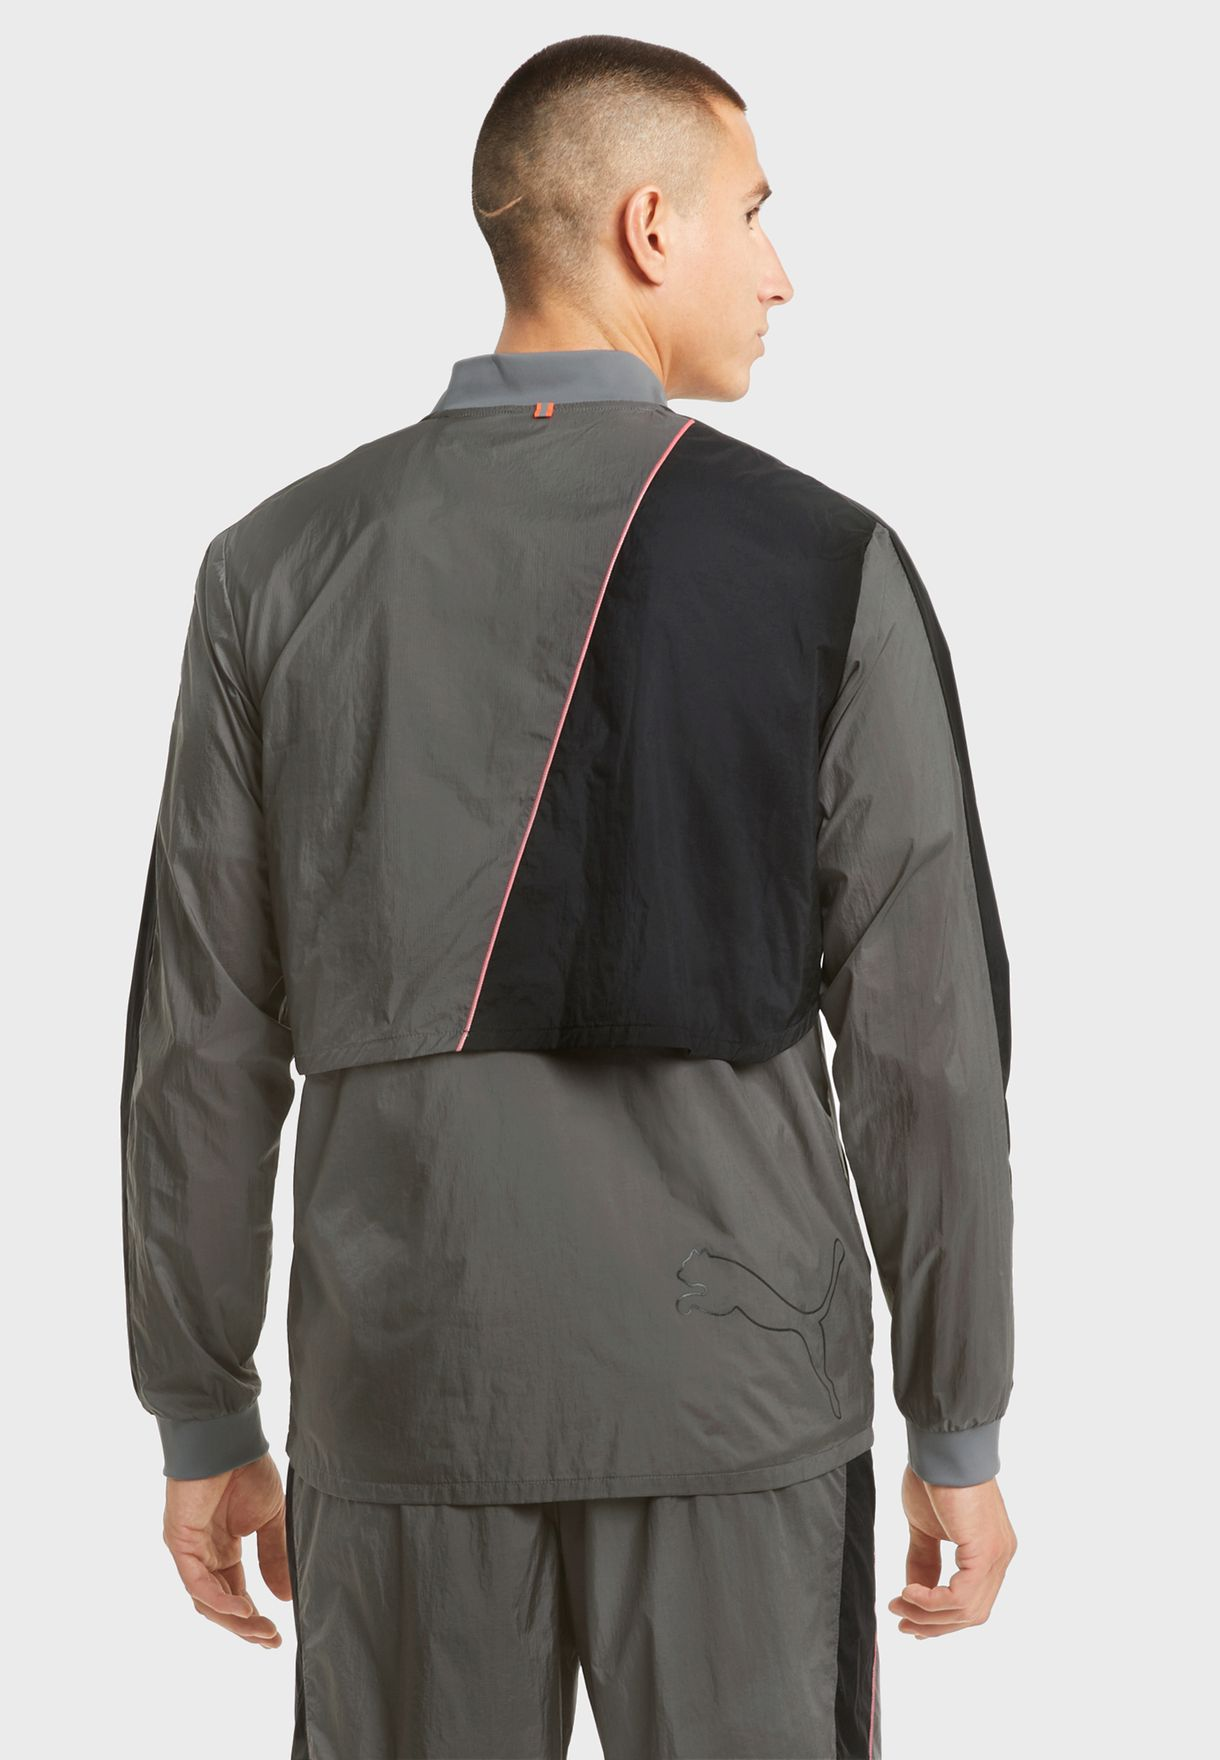 Run Launch Ultra Jacket